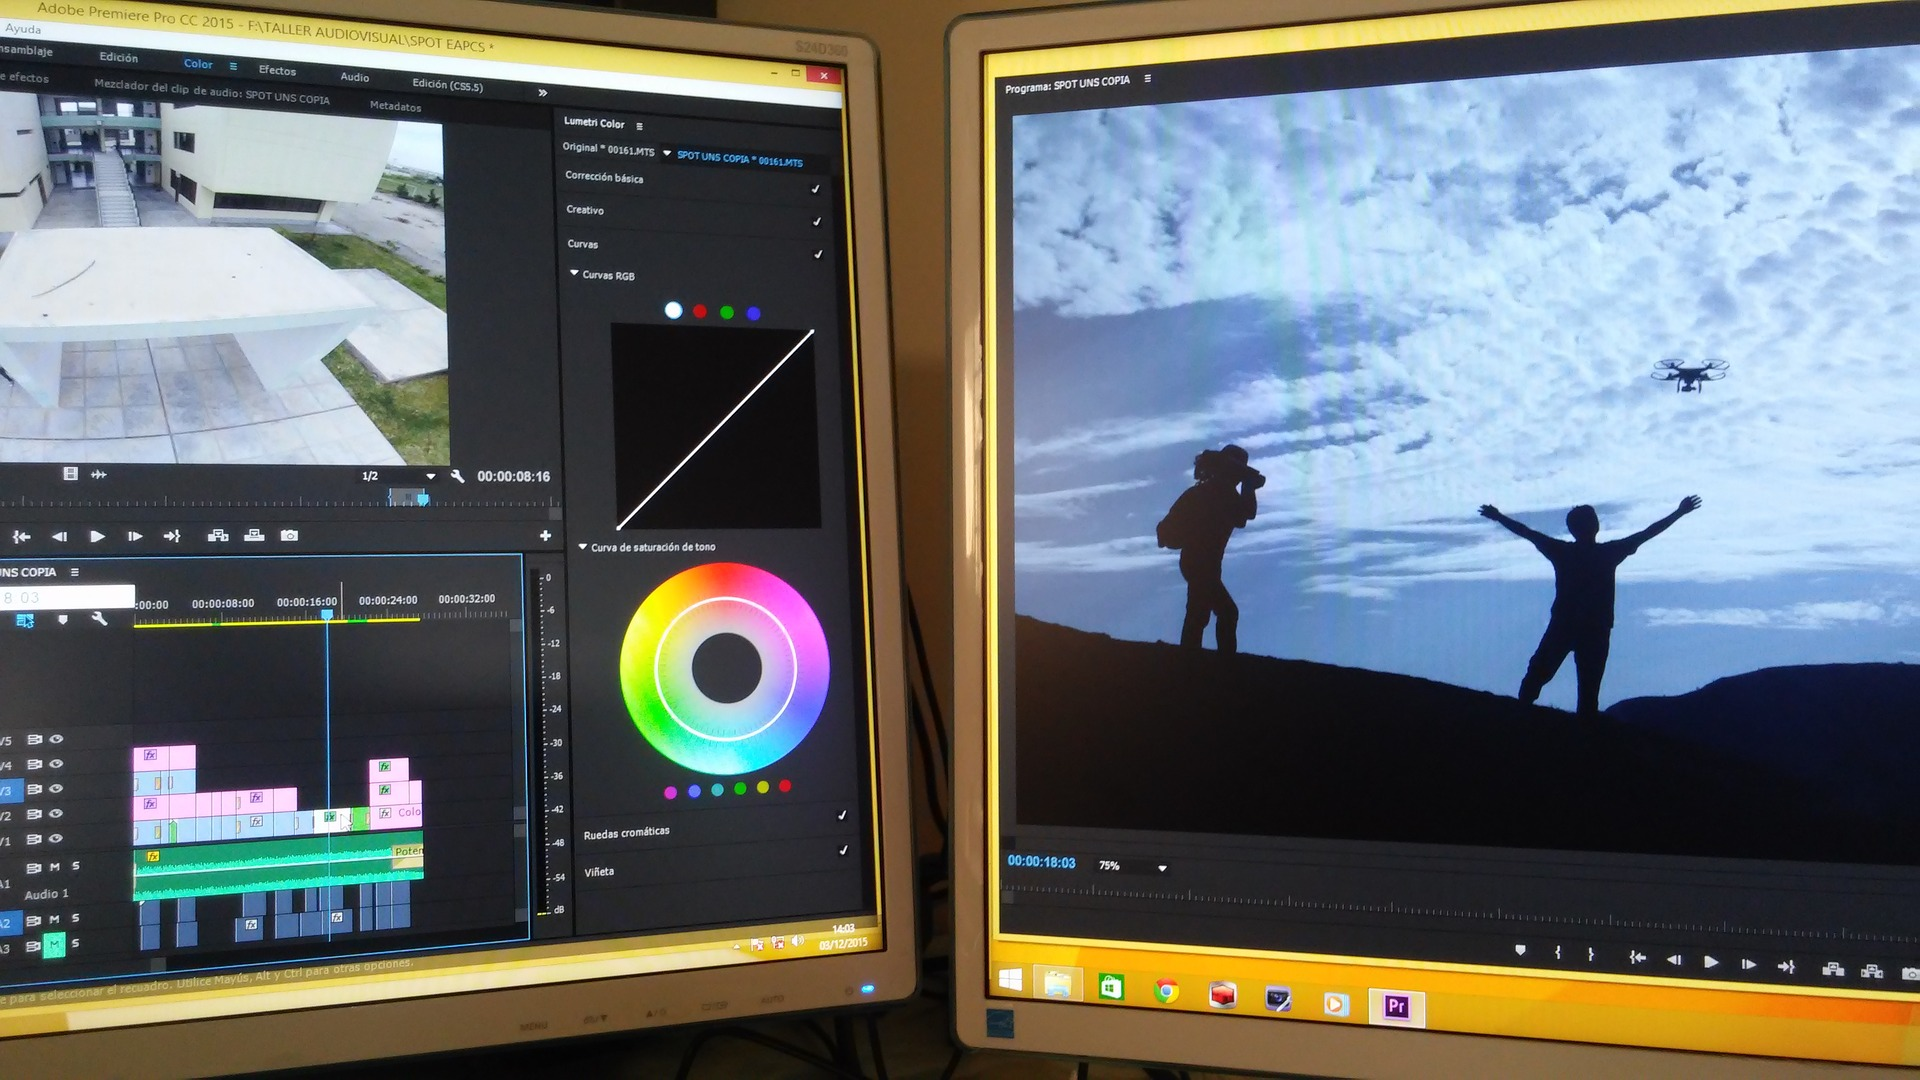 video editing apps competing well against Kinemaster